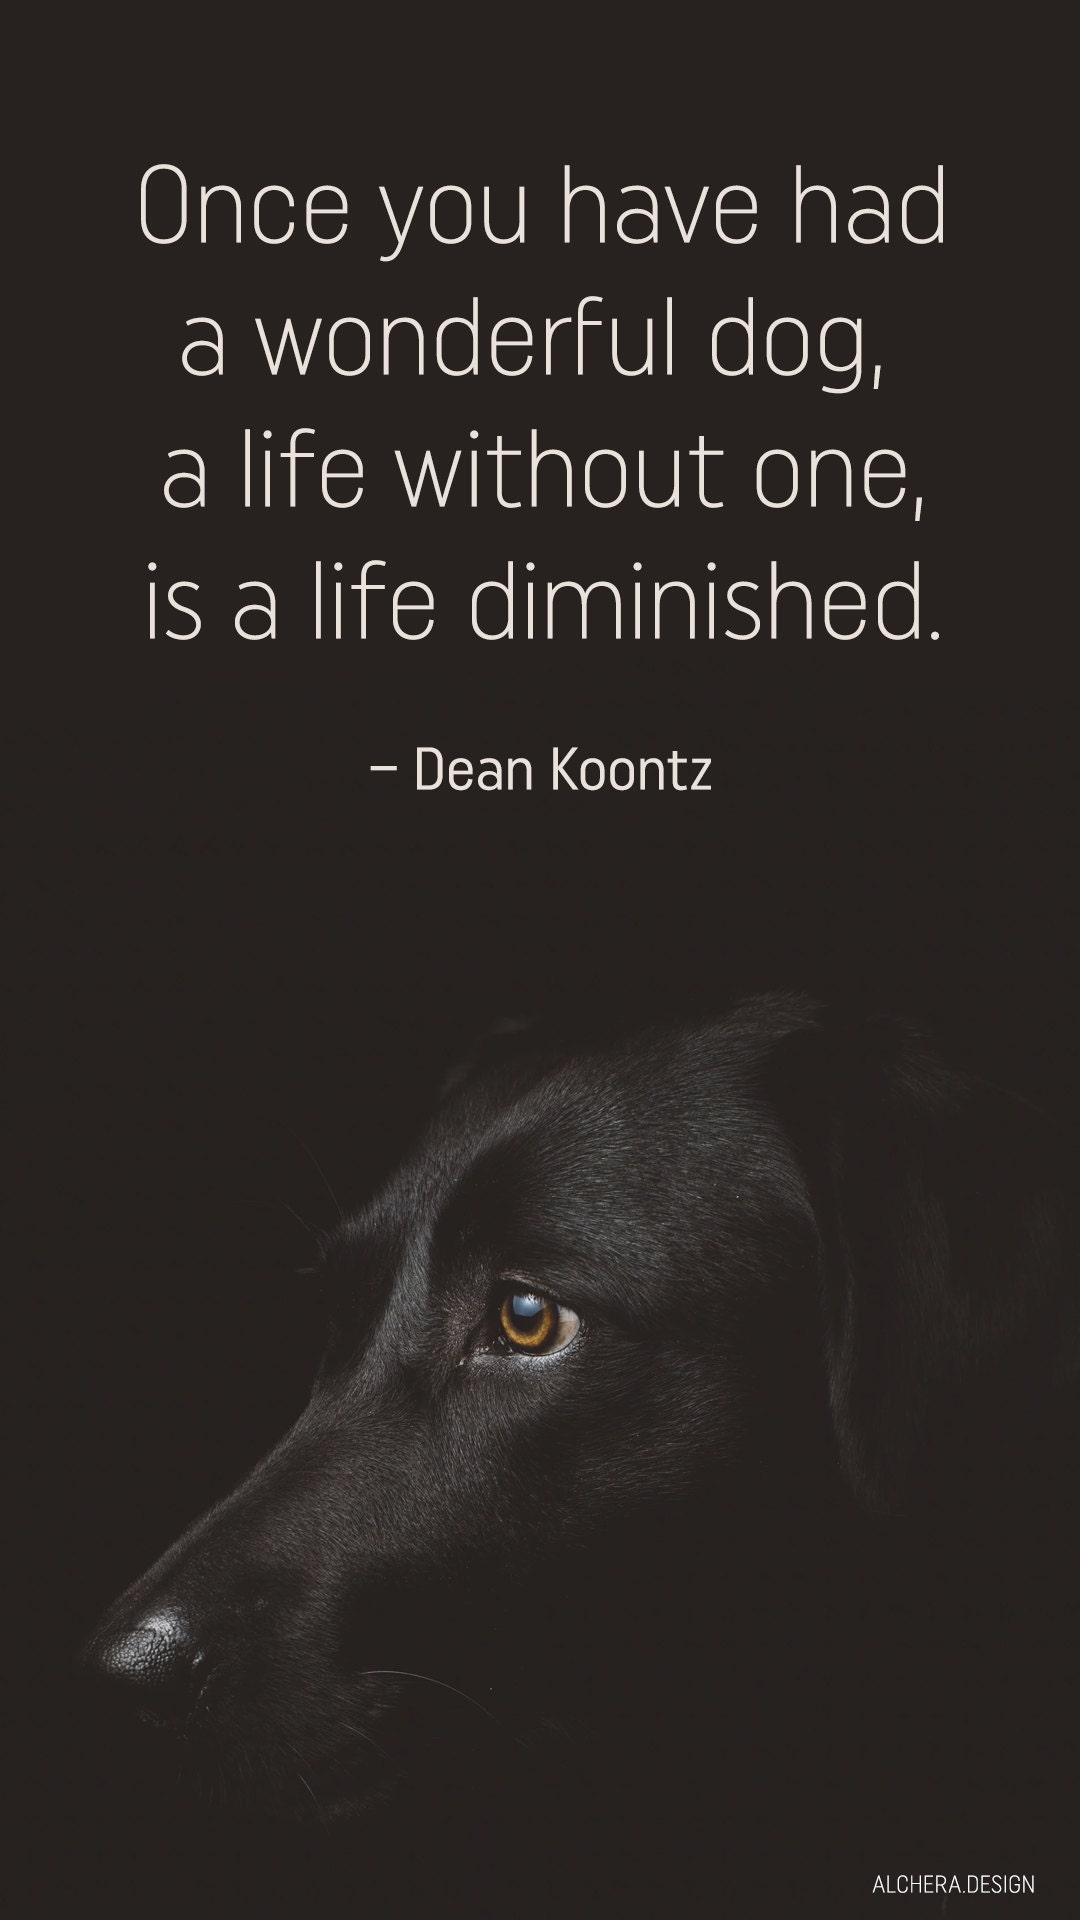 Once youve had a wonderful dog, a life without one is a life diminished.  Quote by Dean Koontz